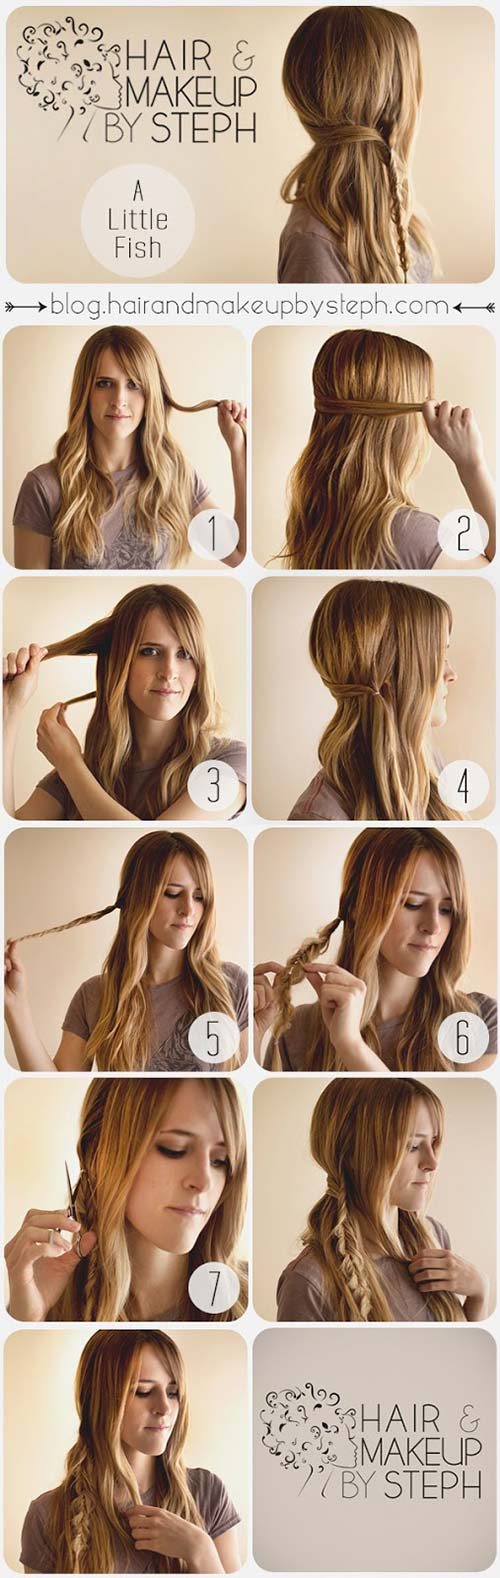 8. Asymmetrical Fishtail